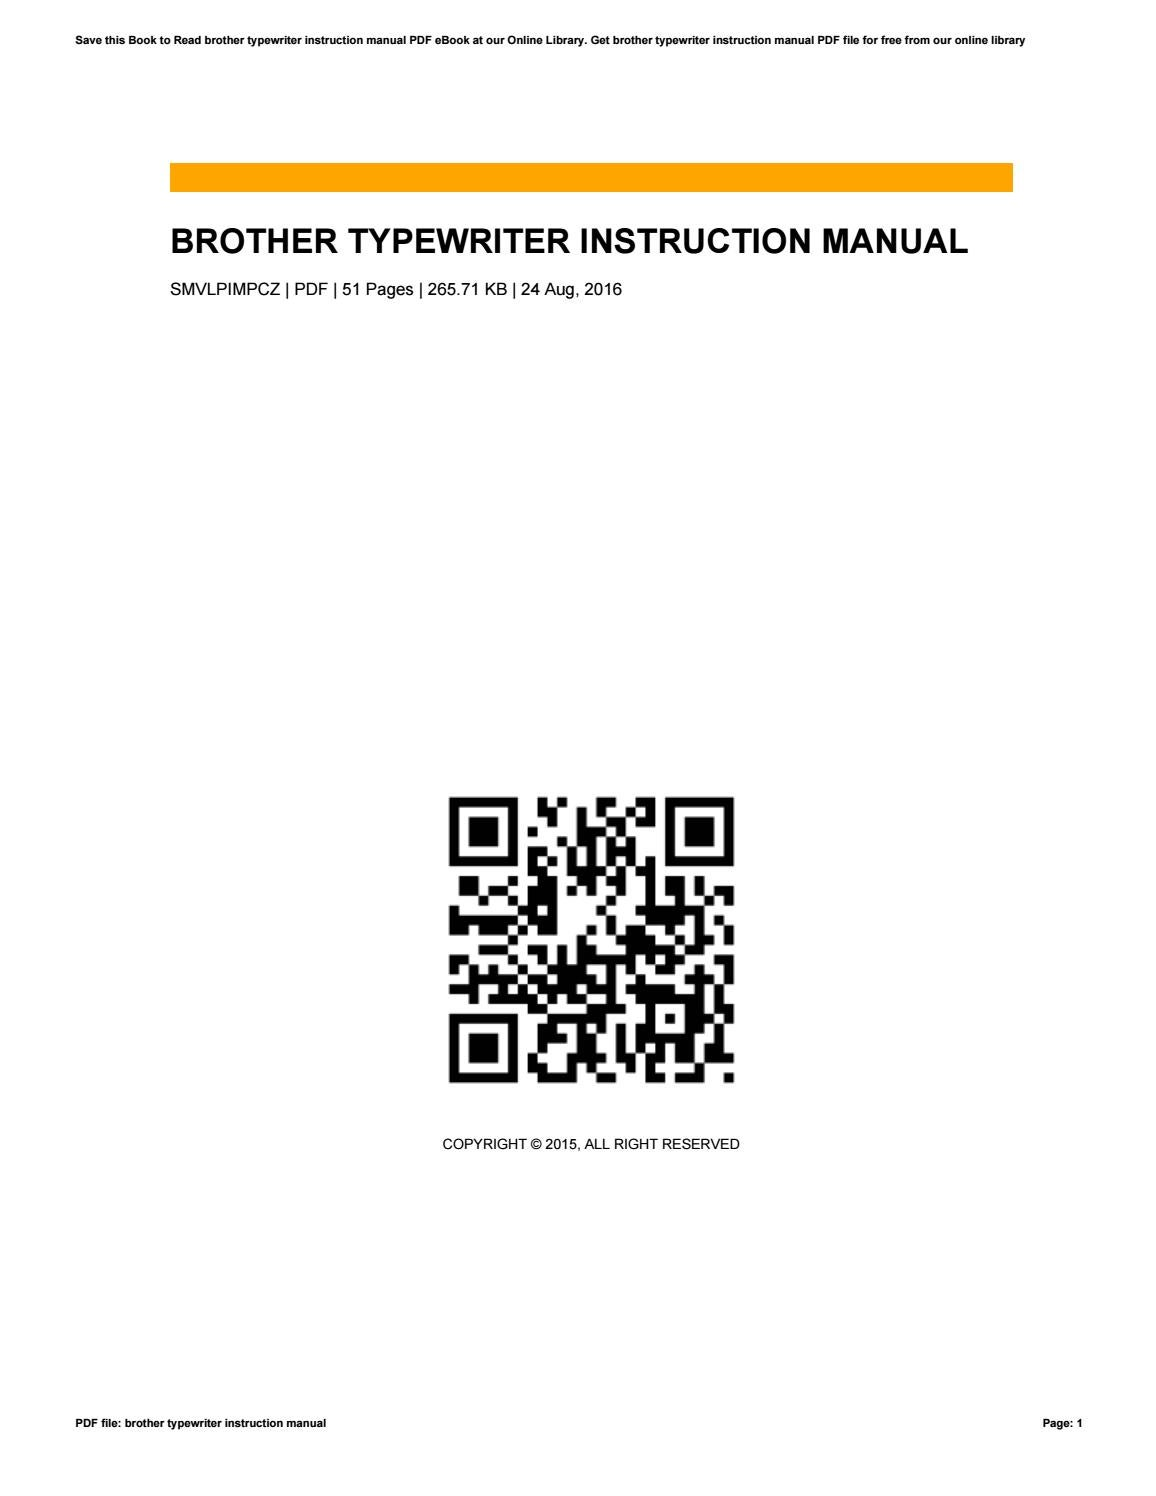 Brother Typewriter Instruction Manual By Robertlawson4598